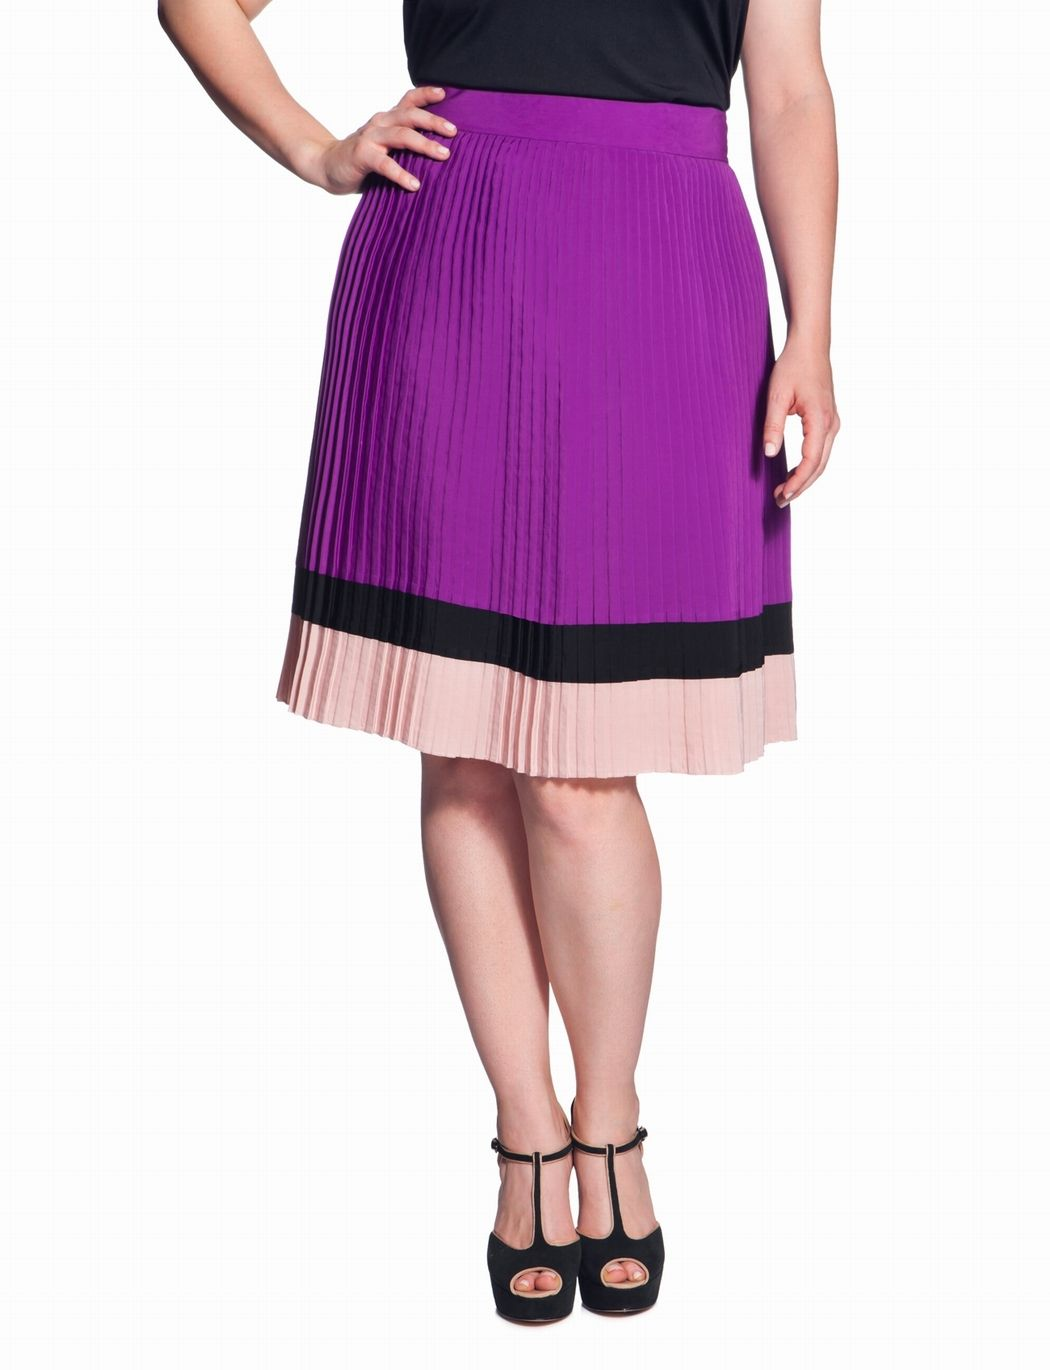 The Shape and the Pleats on this wouldn't work for me, but I just love this skirt!